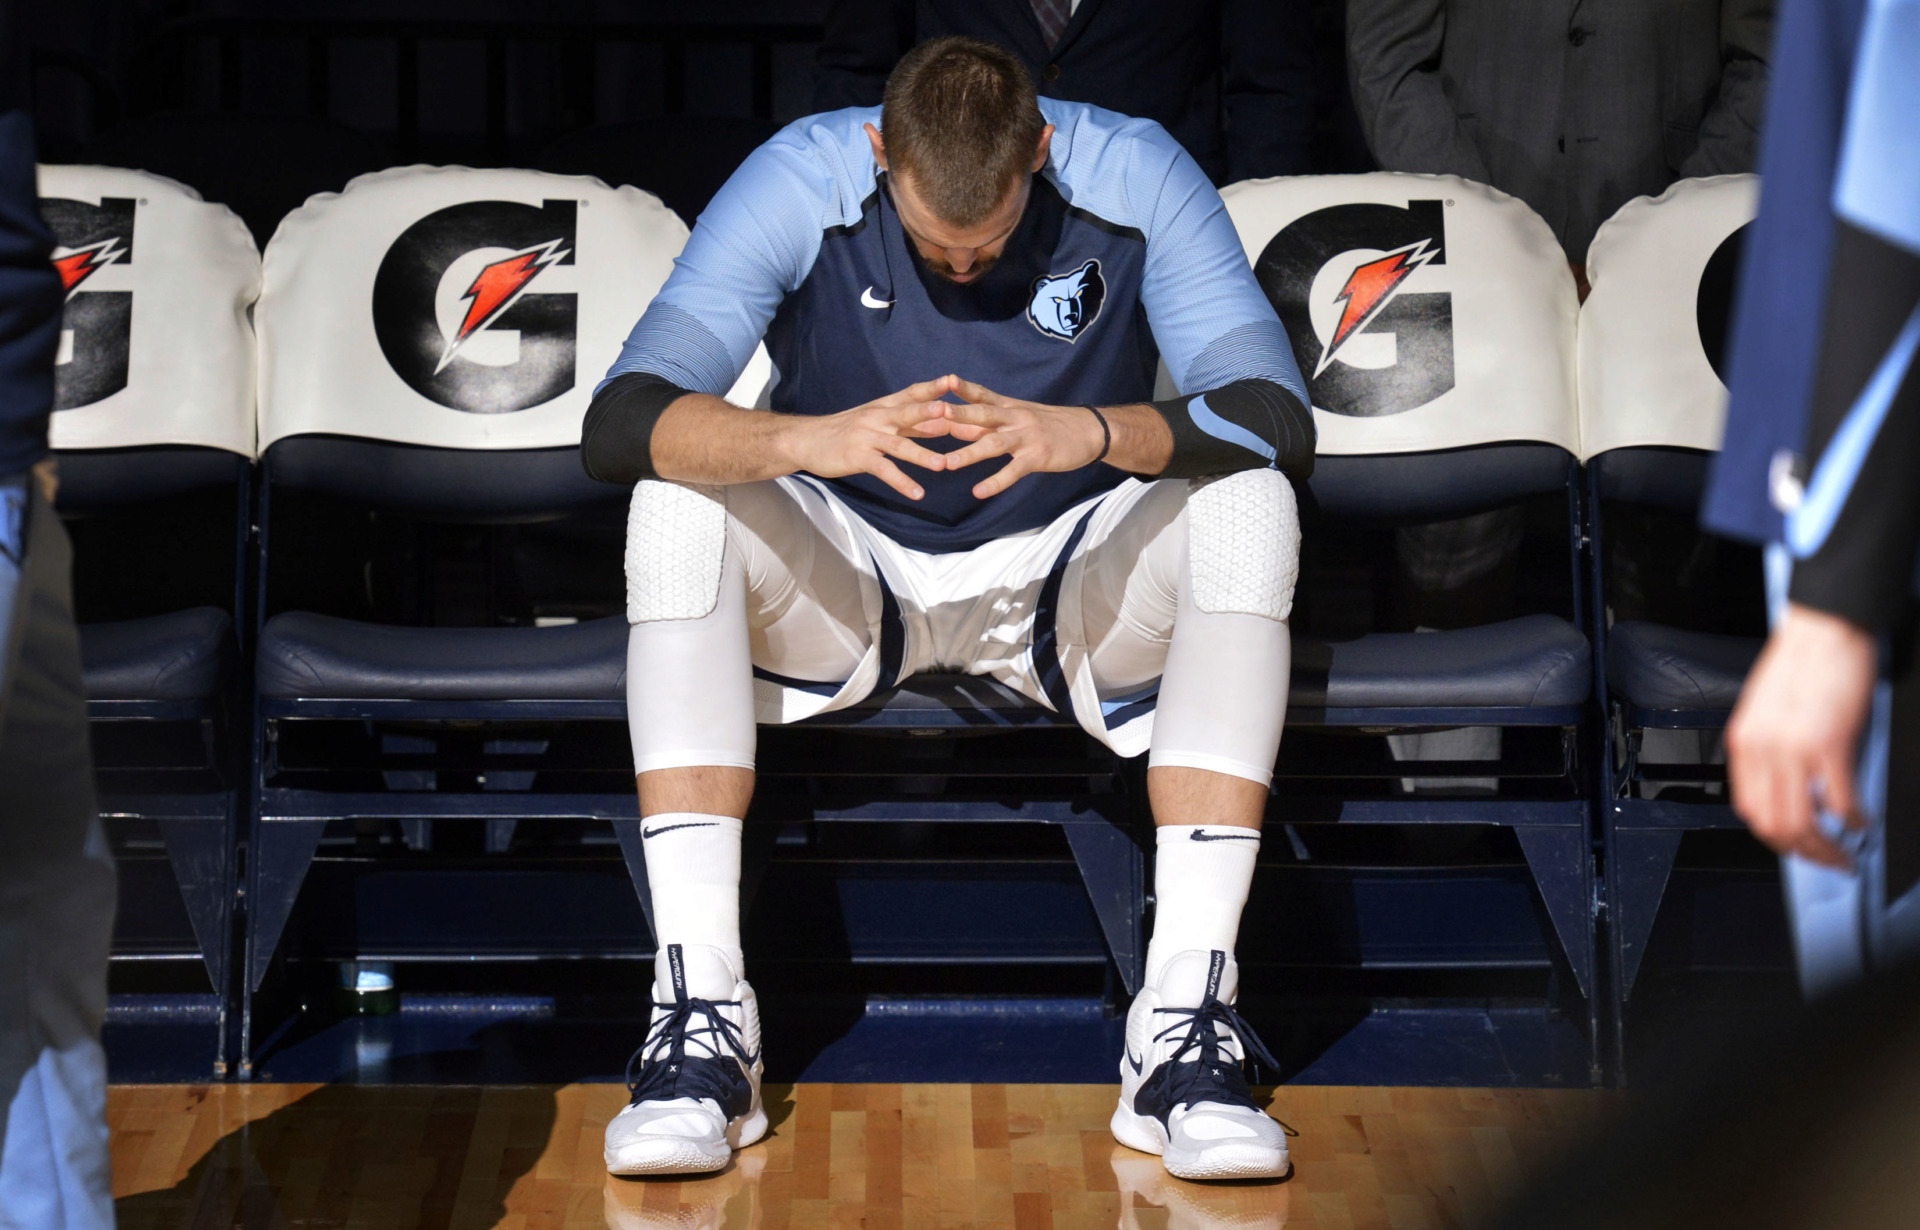 <strong>Memphis Grizzlies center Marc Gasol waits for his name to be called during player introductions before 2018 preseason game in October against the Atlanta Hawks in Memphis.</strong> (AP Photo/Brandon Dill)